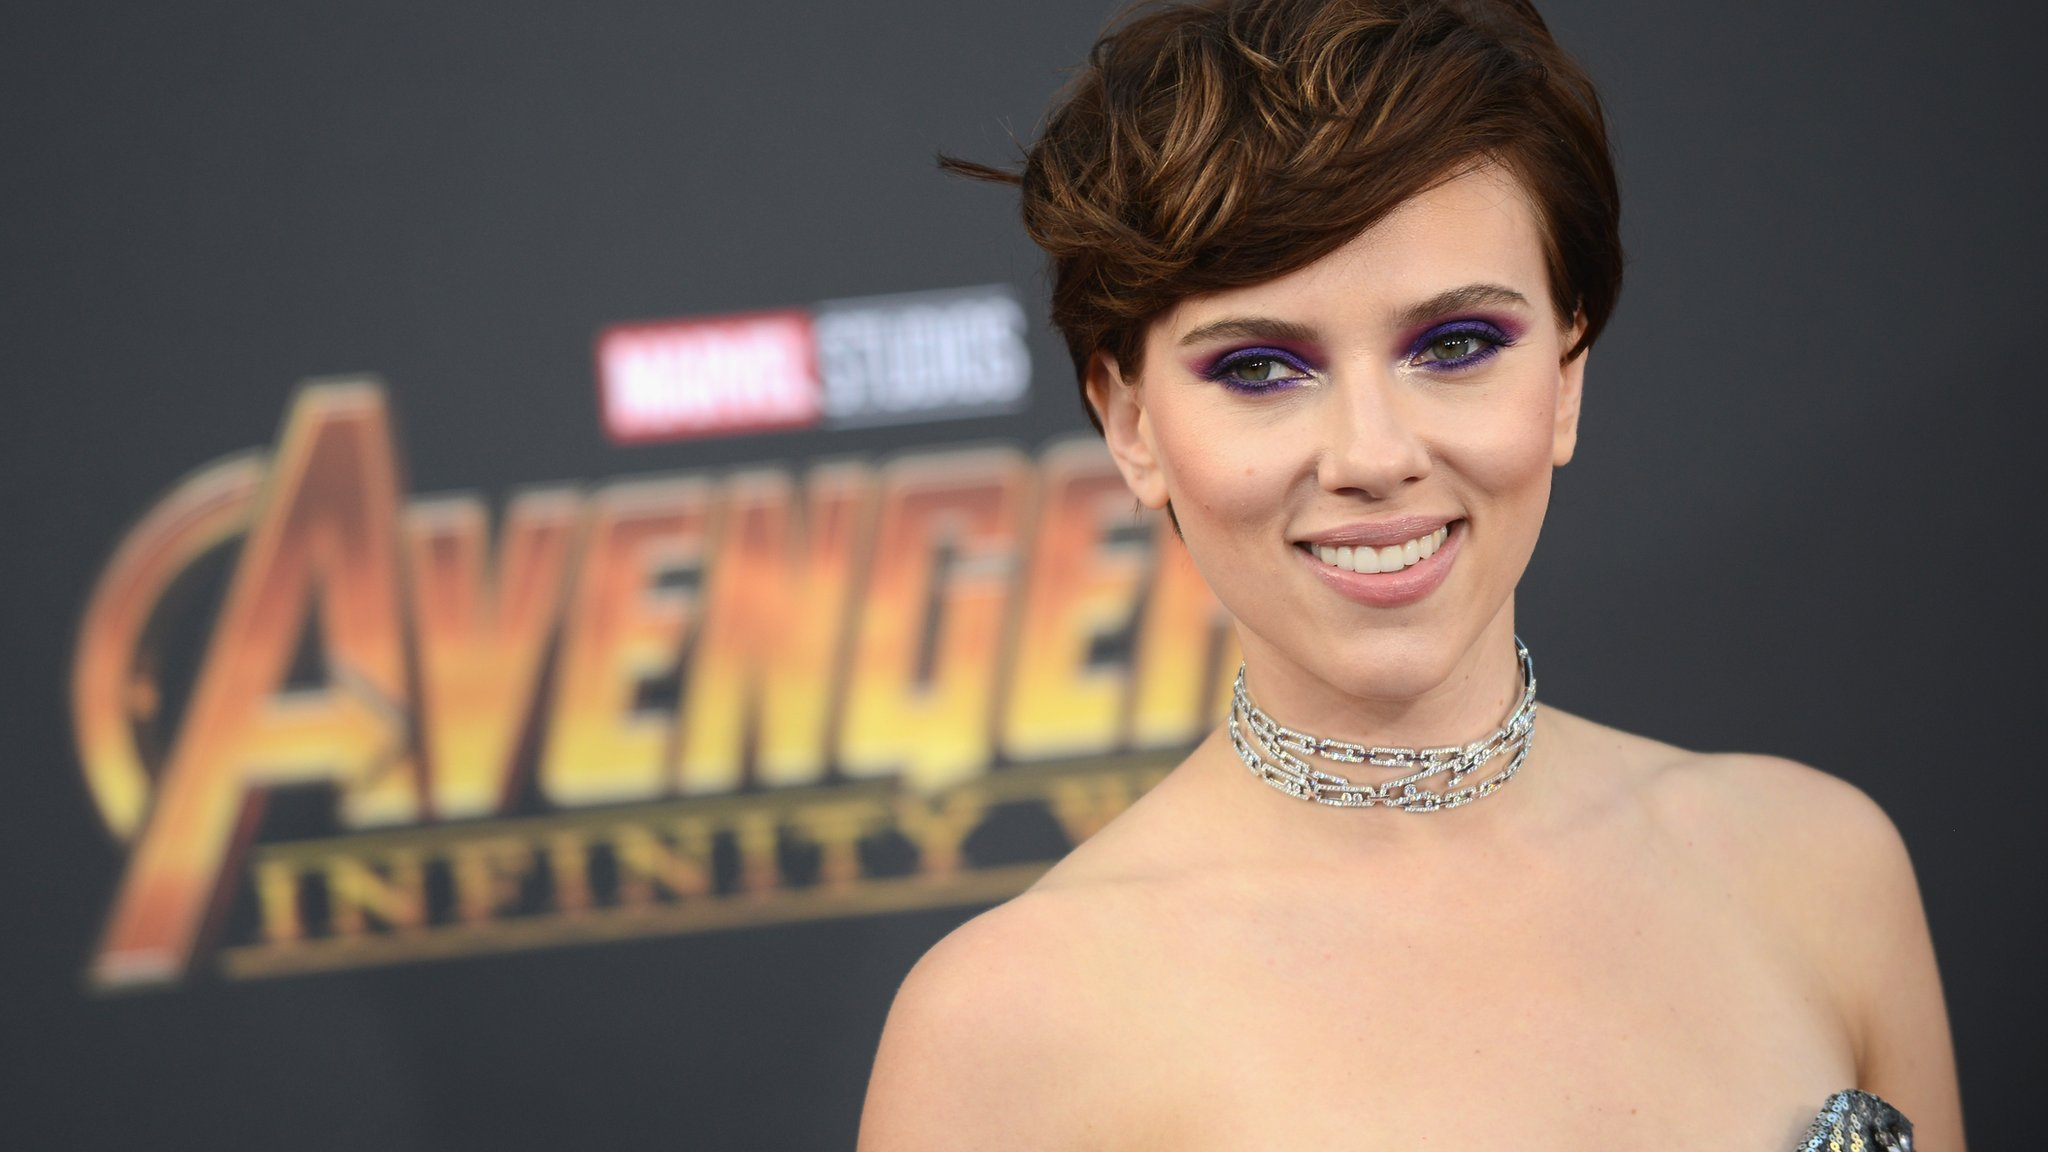 Scarlett Johansson is world's best-paid actress, Forbes says